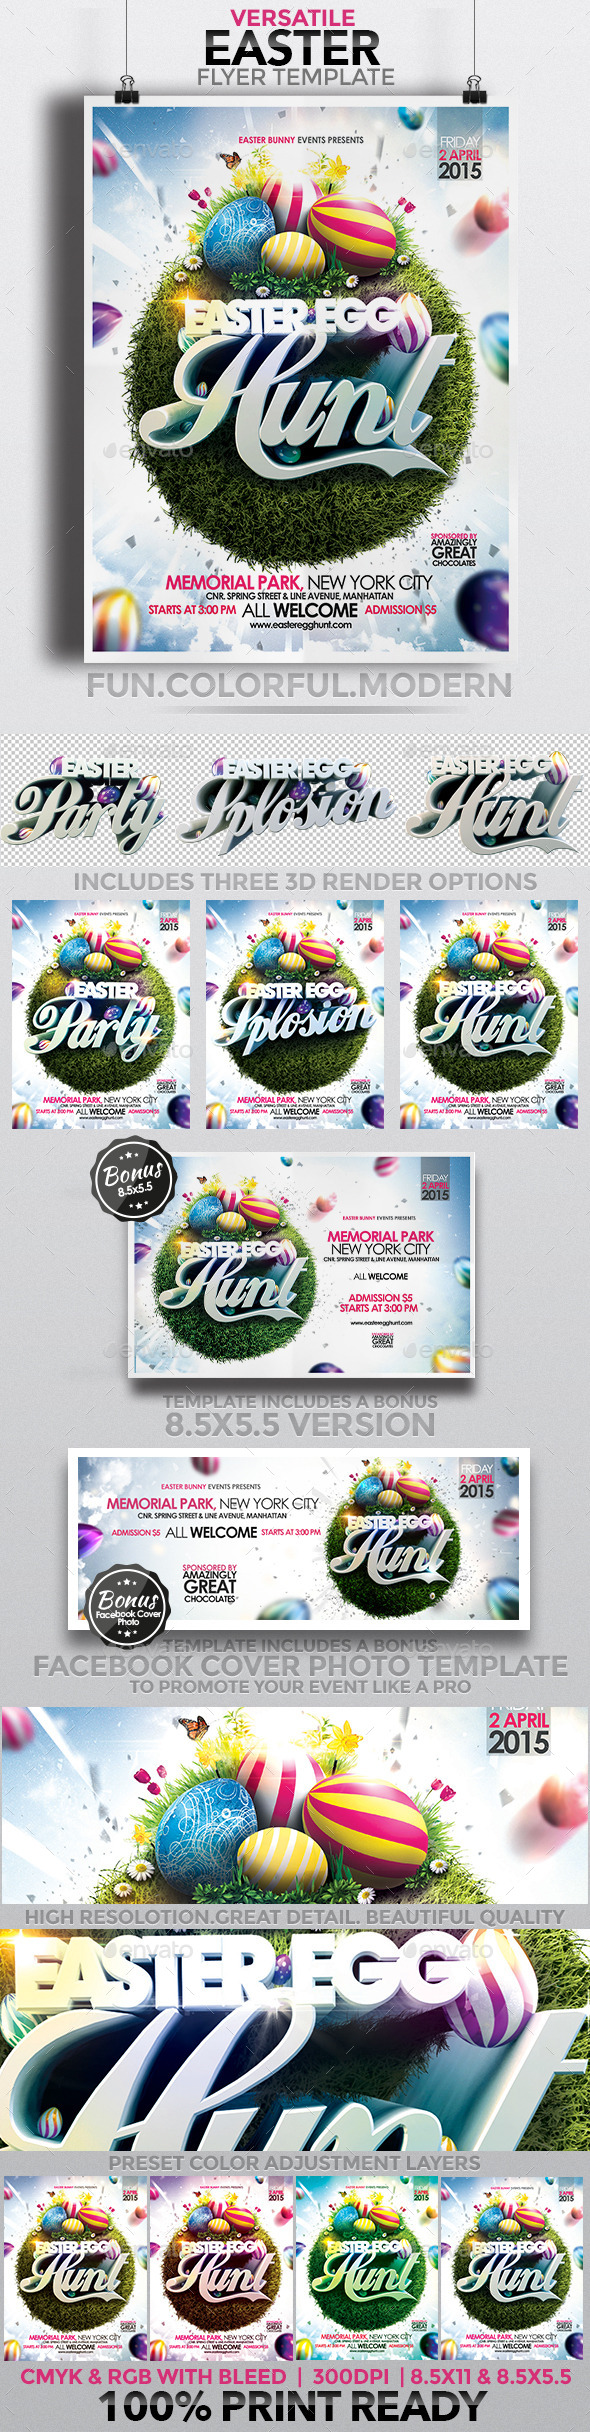 Versatile Easter Flyer Template - Clubs & Parties Events